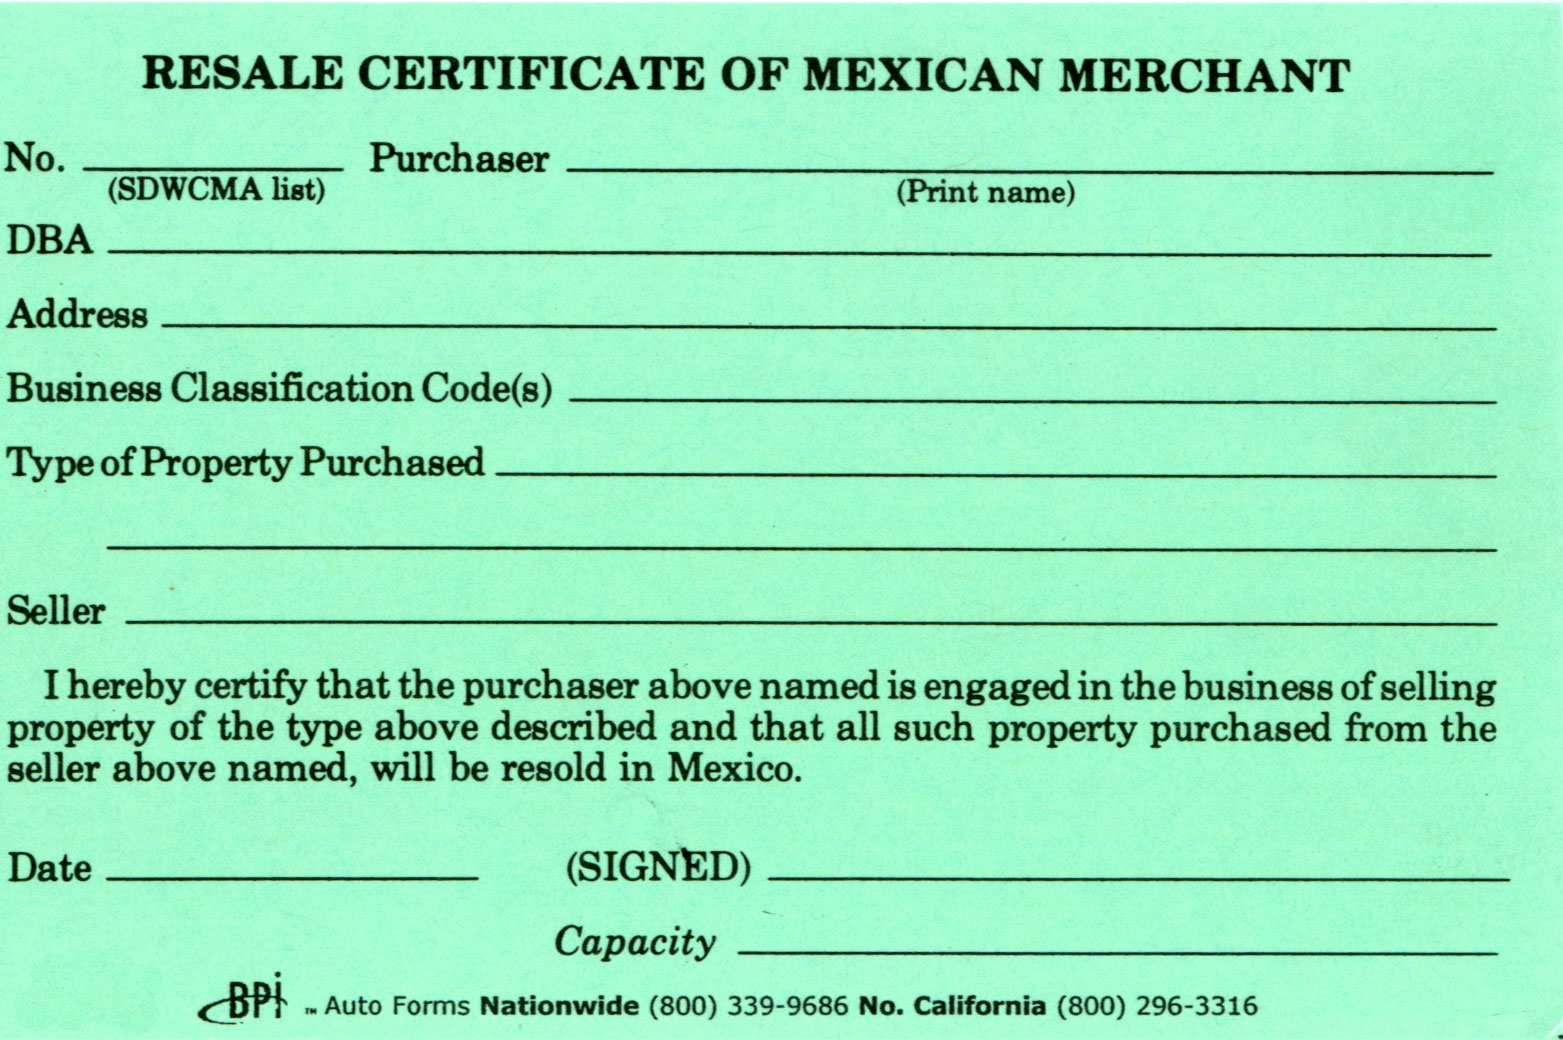 Certificate resale mexican merchant bpi dealer supplies certificate resale mexican merchant 1betcityfo Image collections